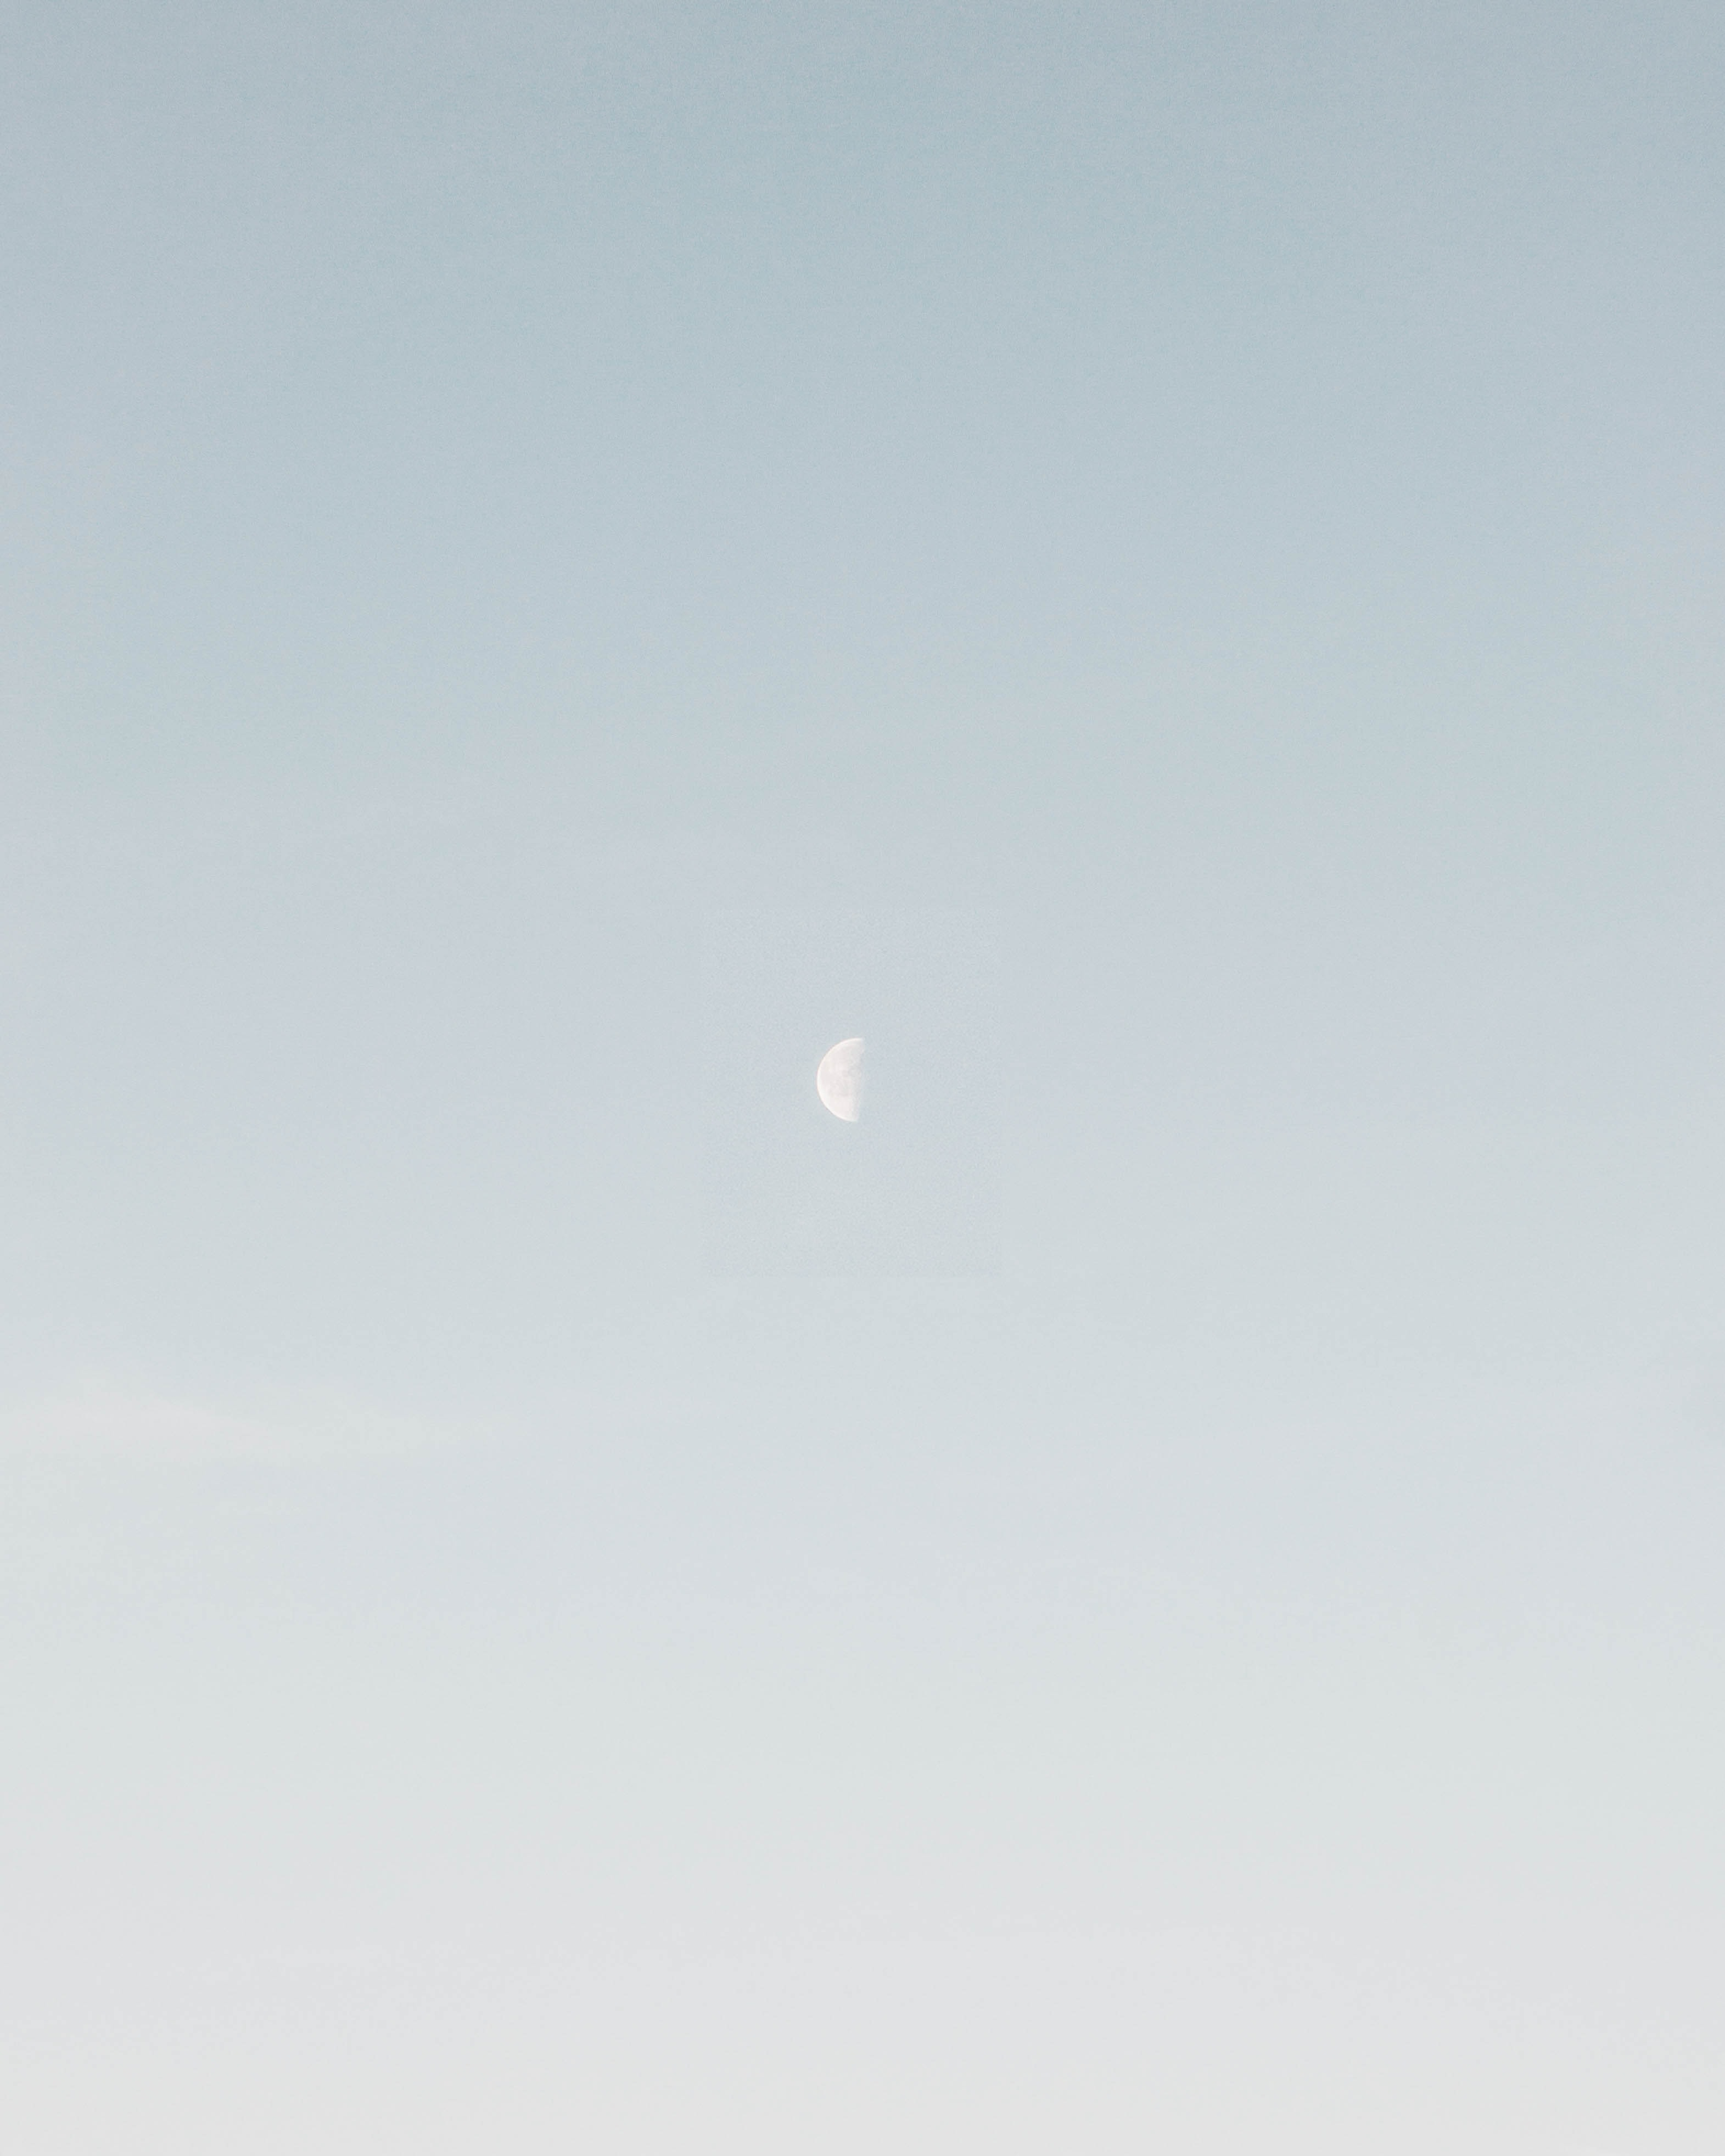 photo of half-moon during daytime